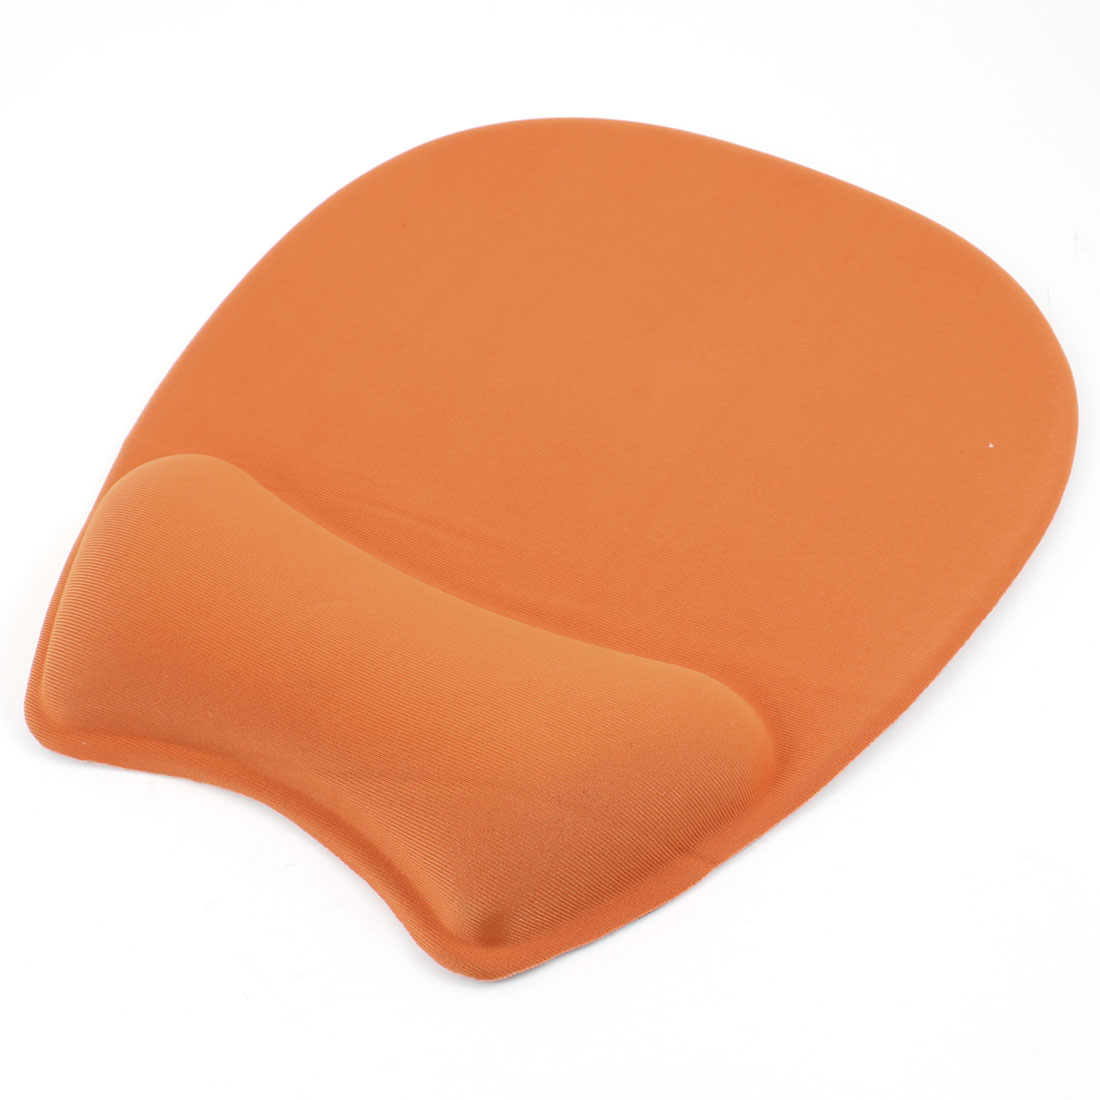 Orange Silicone Gel Wrist Rest Support Mouse Pad Mat for Desktop Computer